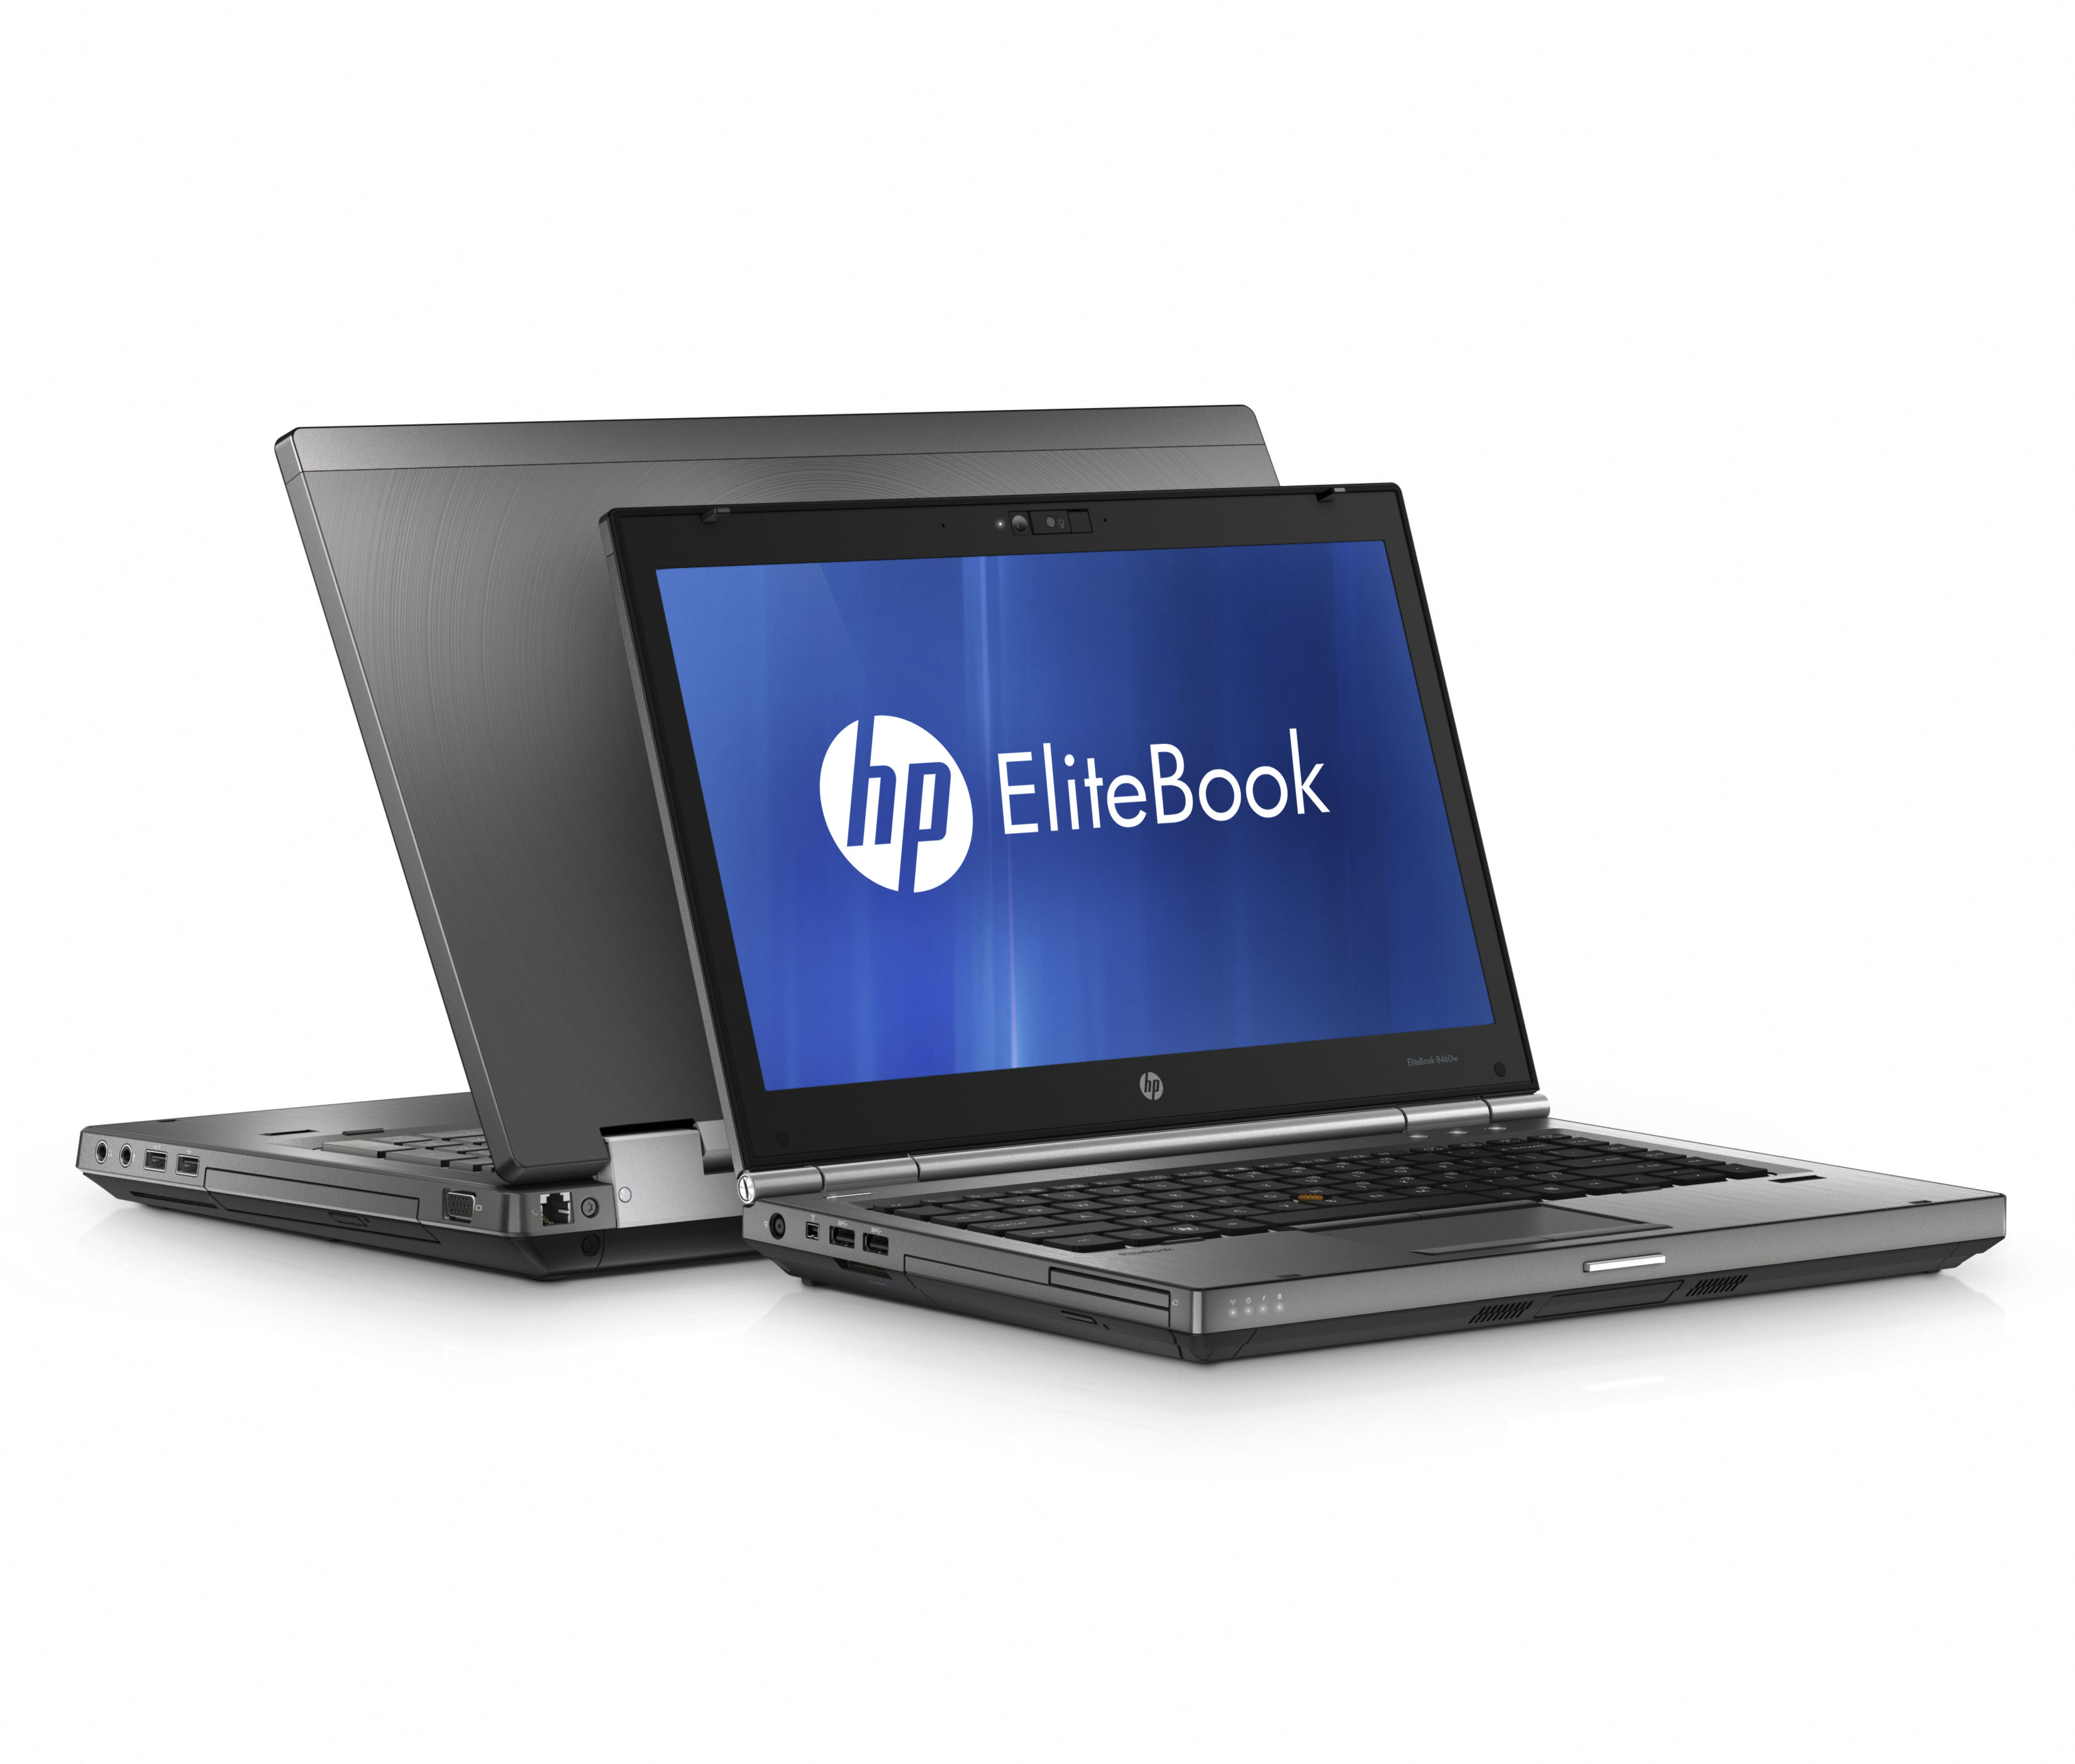 EliteBook 8760w Comparison